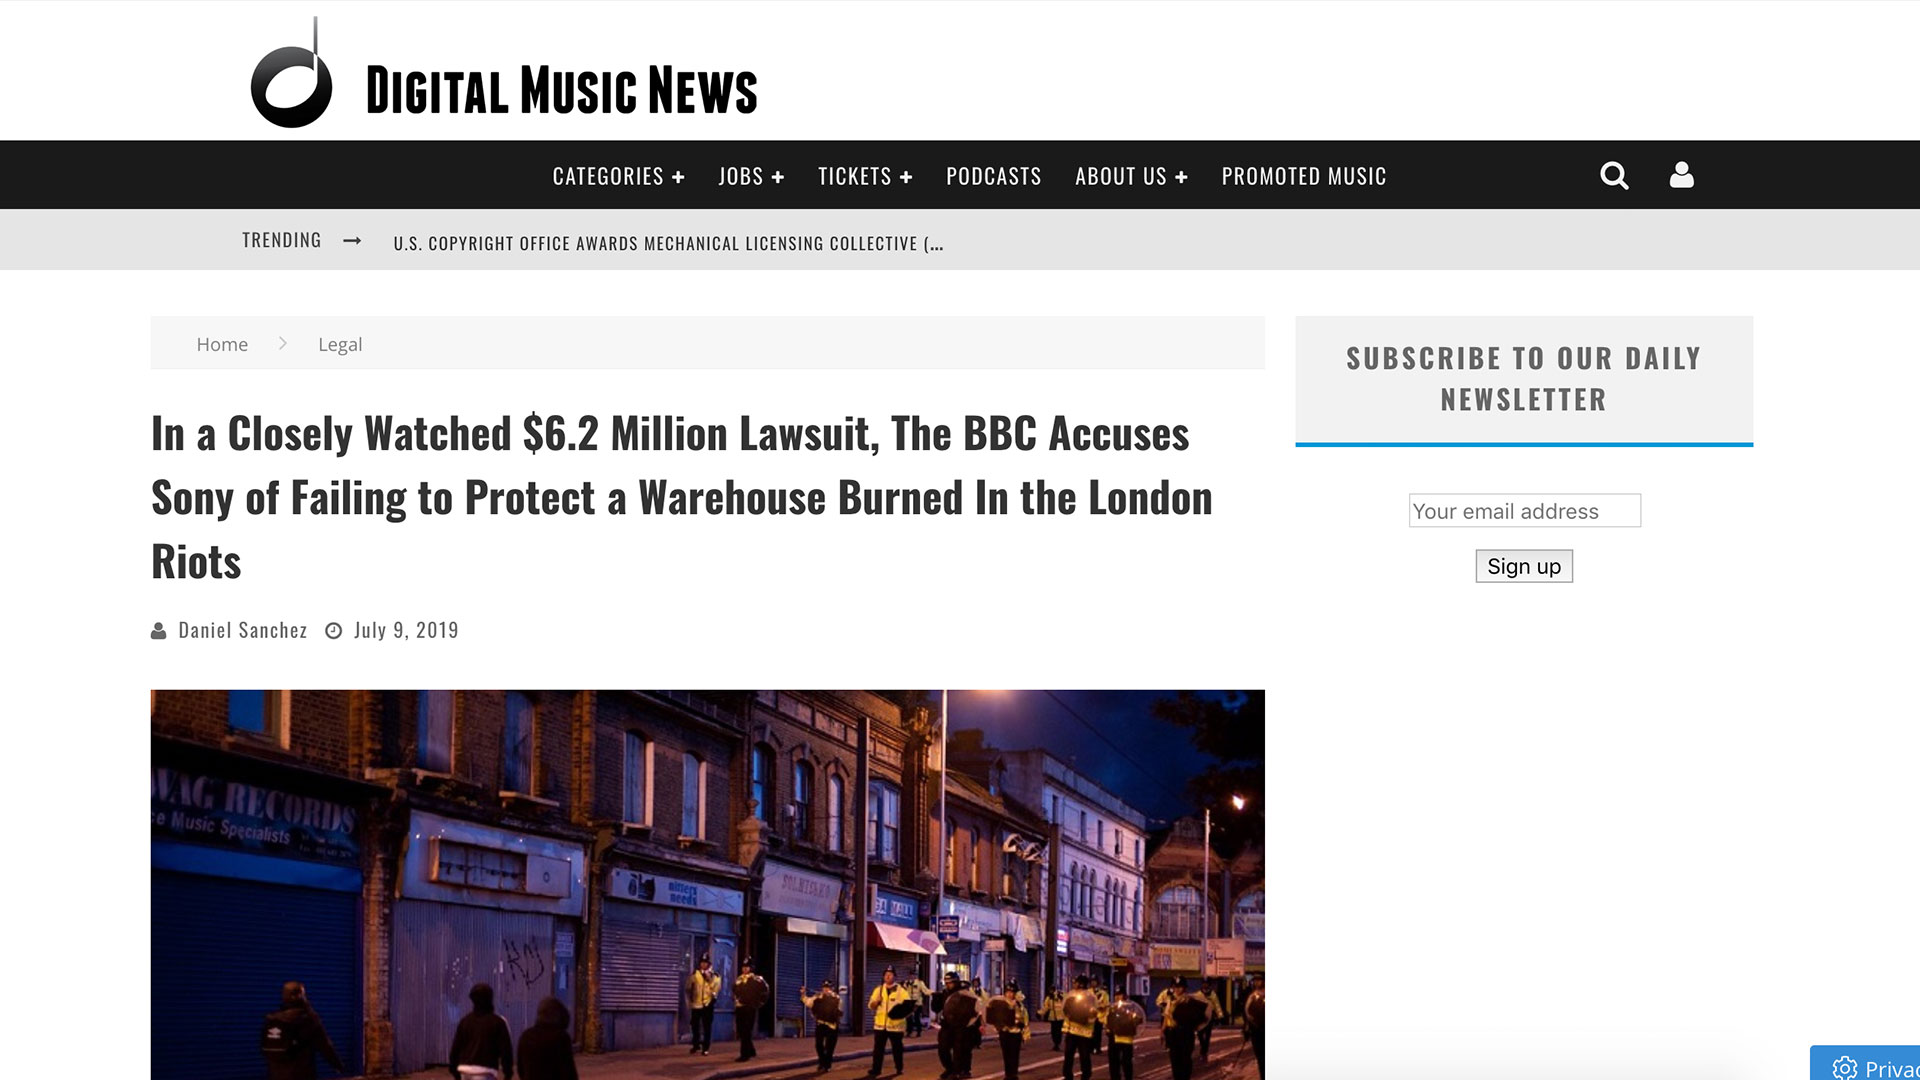 Fairness Rocks News In a Closely Watched $6.2 Million Lawsuit, The BBC Accuses Sony of Failing to Protect a Warehouse Burned In the London Riots